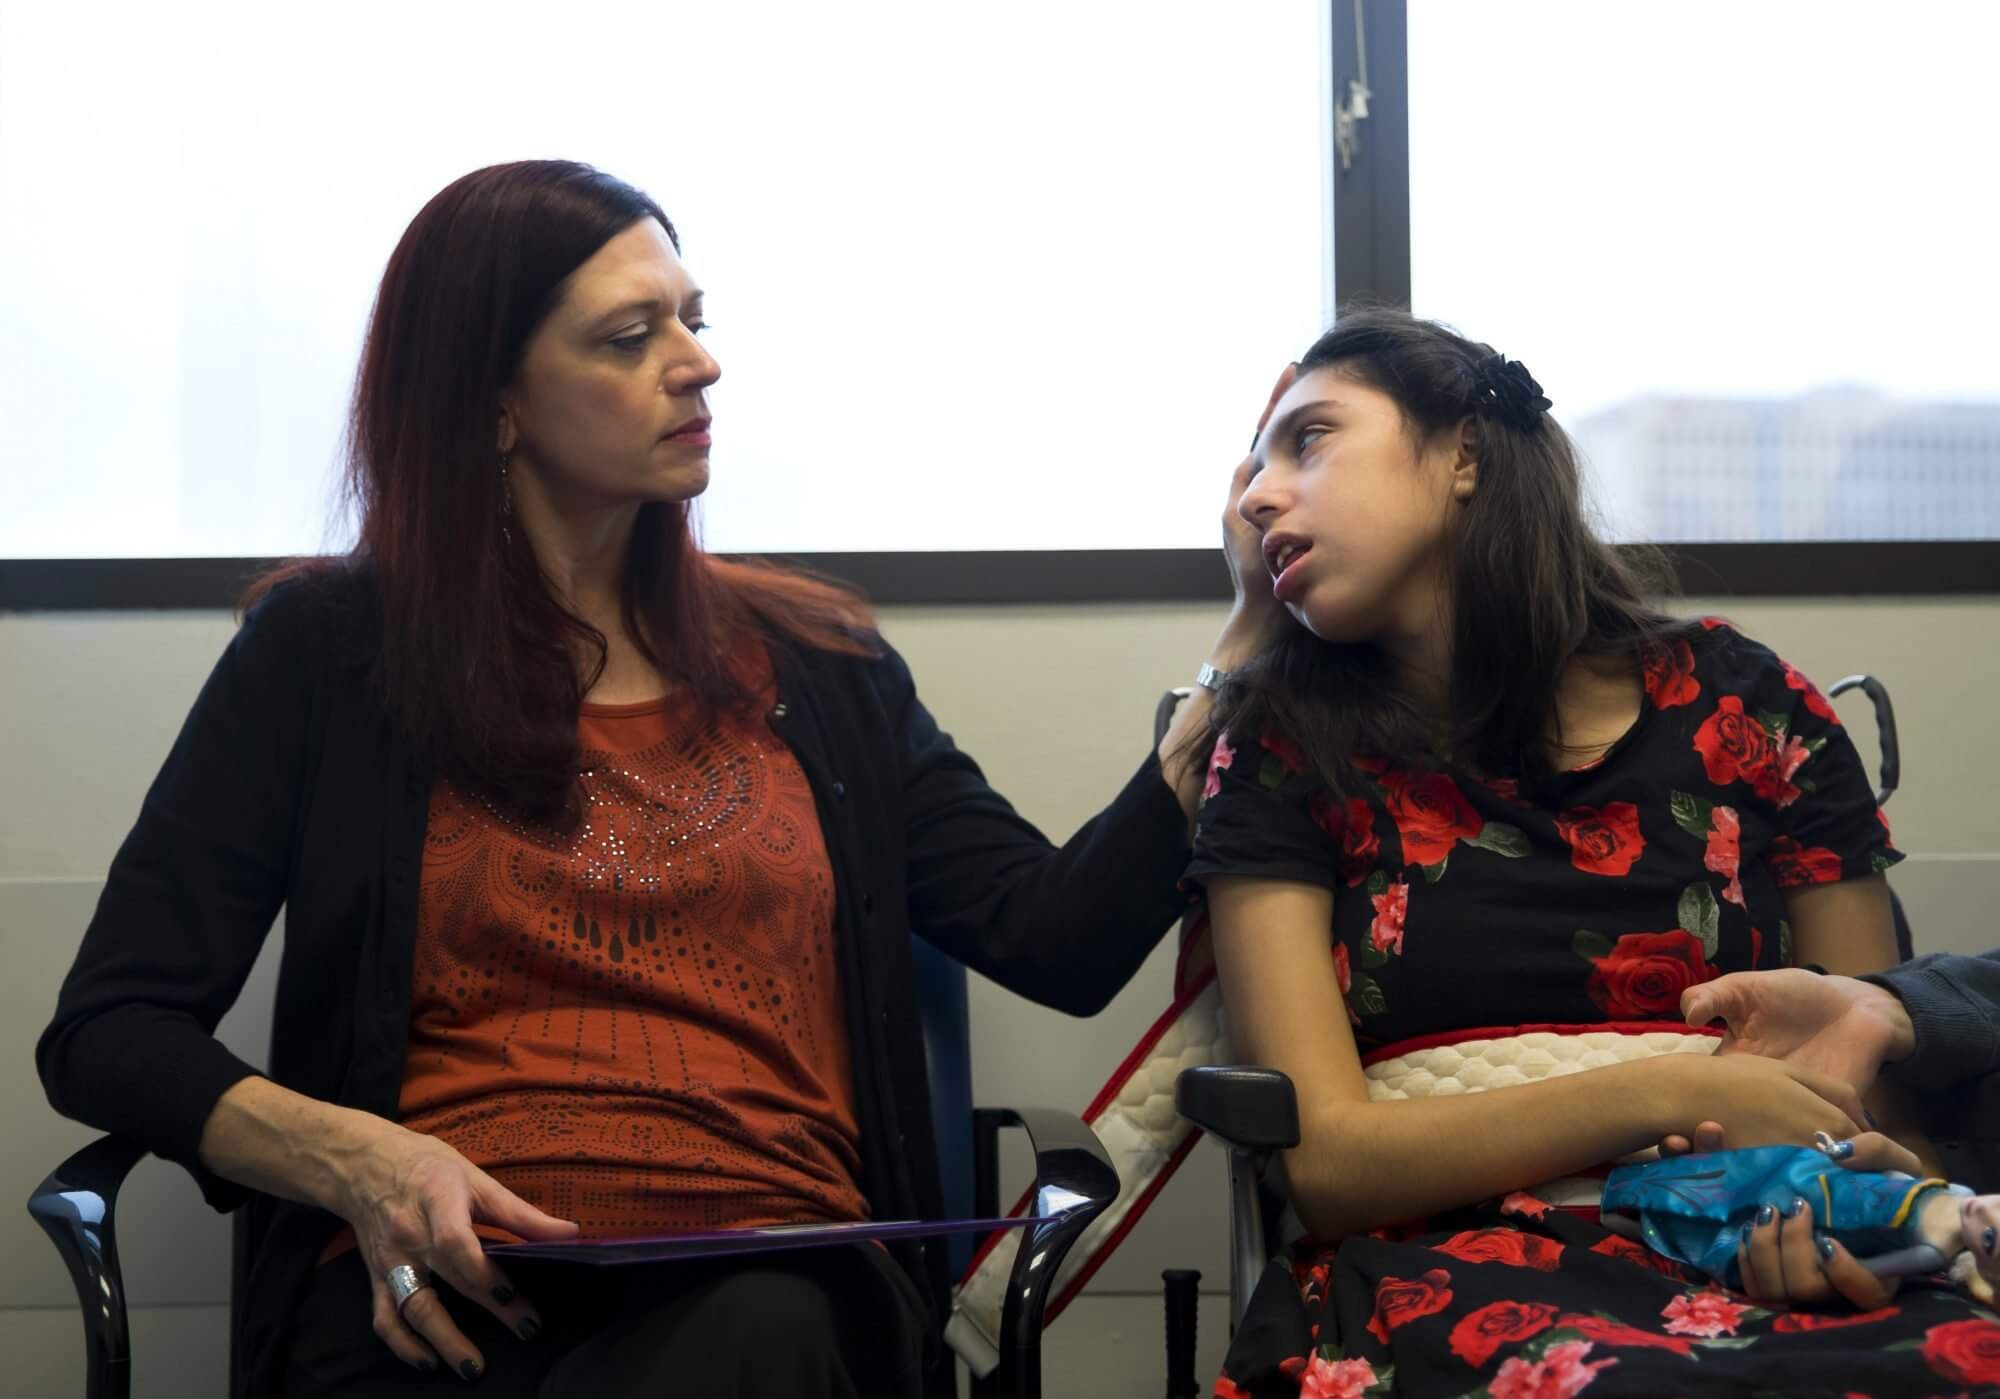 Sarah Ybarra strokes her daughter Kristin's hair during an appointment with Dr. Rebecca Schultz at Texas Children's Hospital. (Photo: Annie Mulligan.)